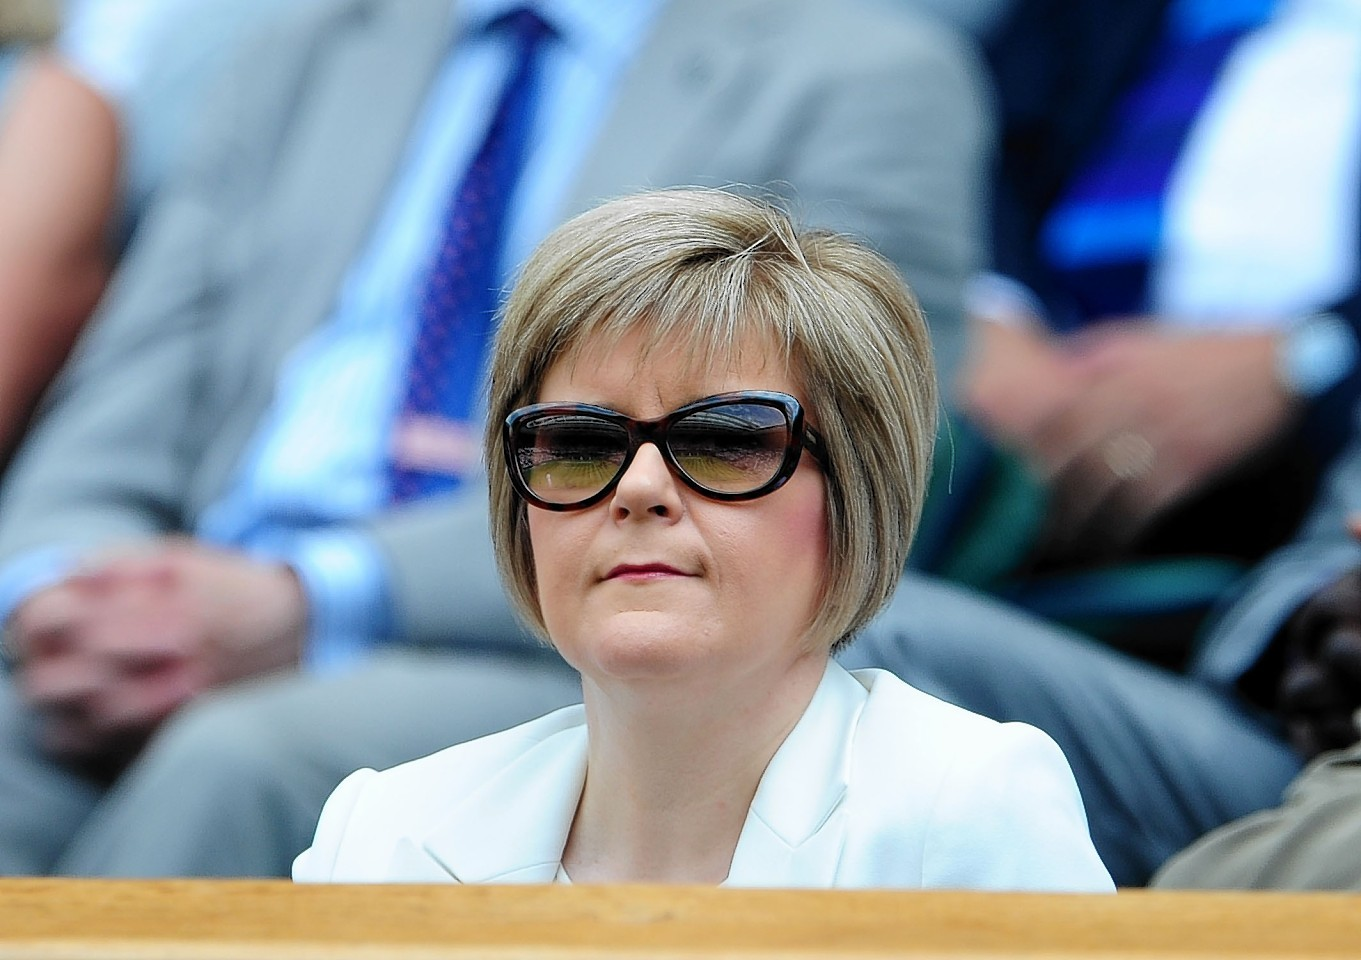 Stylish: Sturgeon is a fan of heels, shades and suits but admits she prefers lounging about in jeans